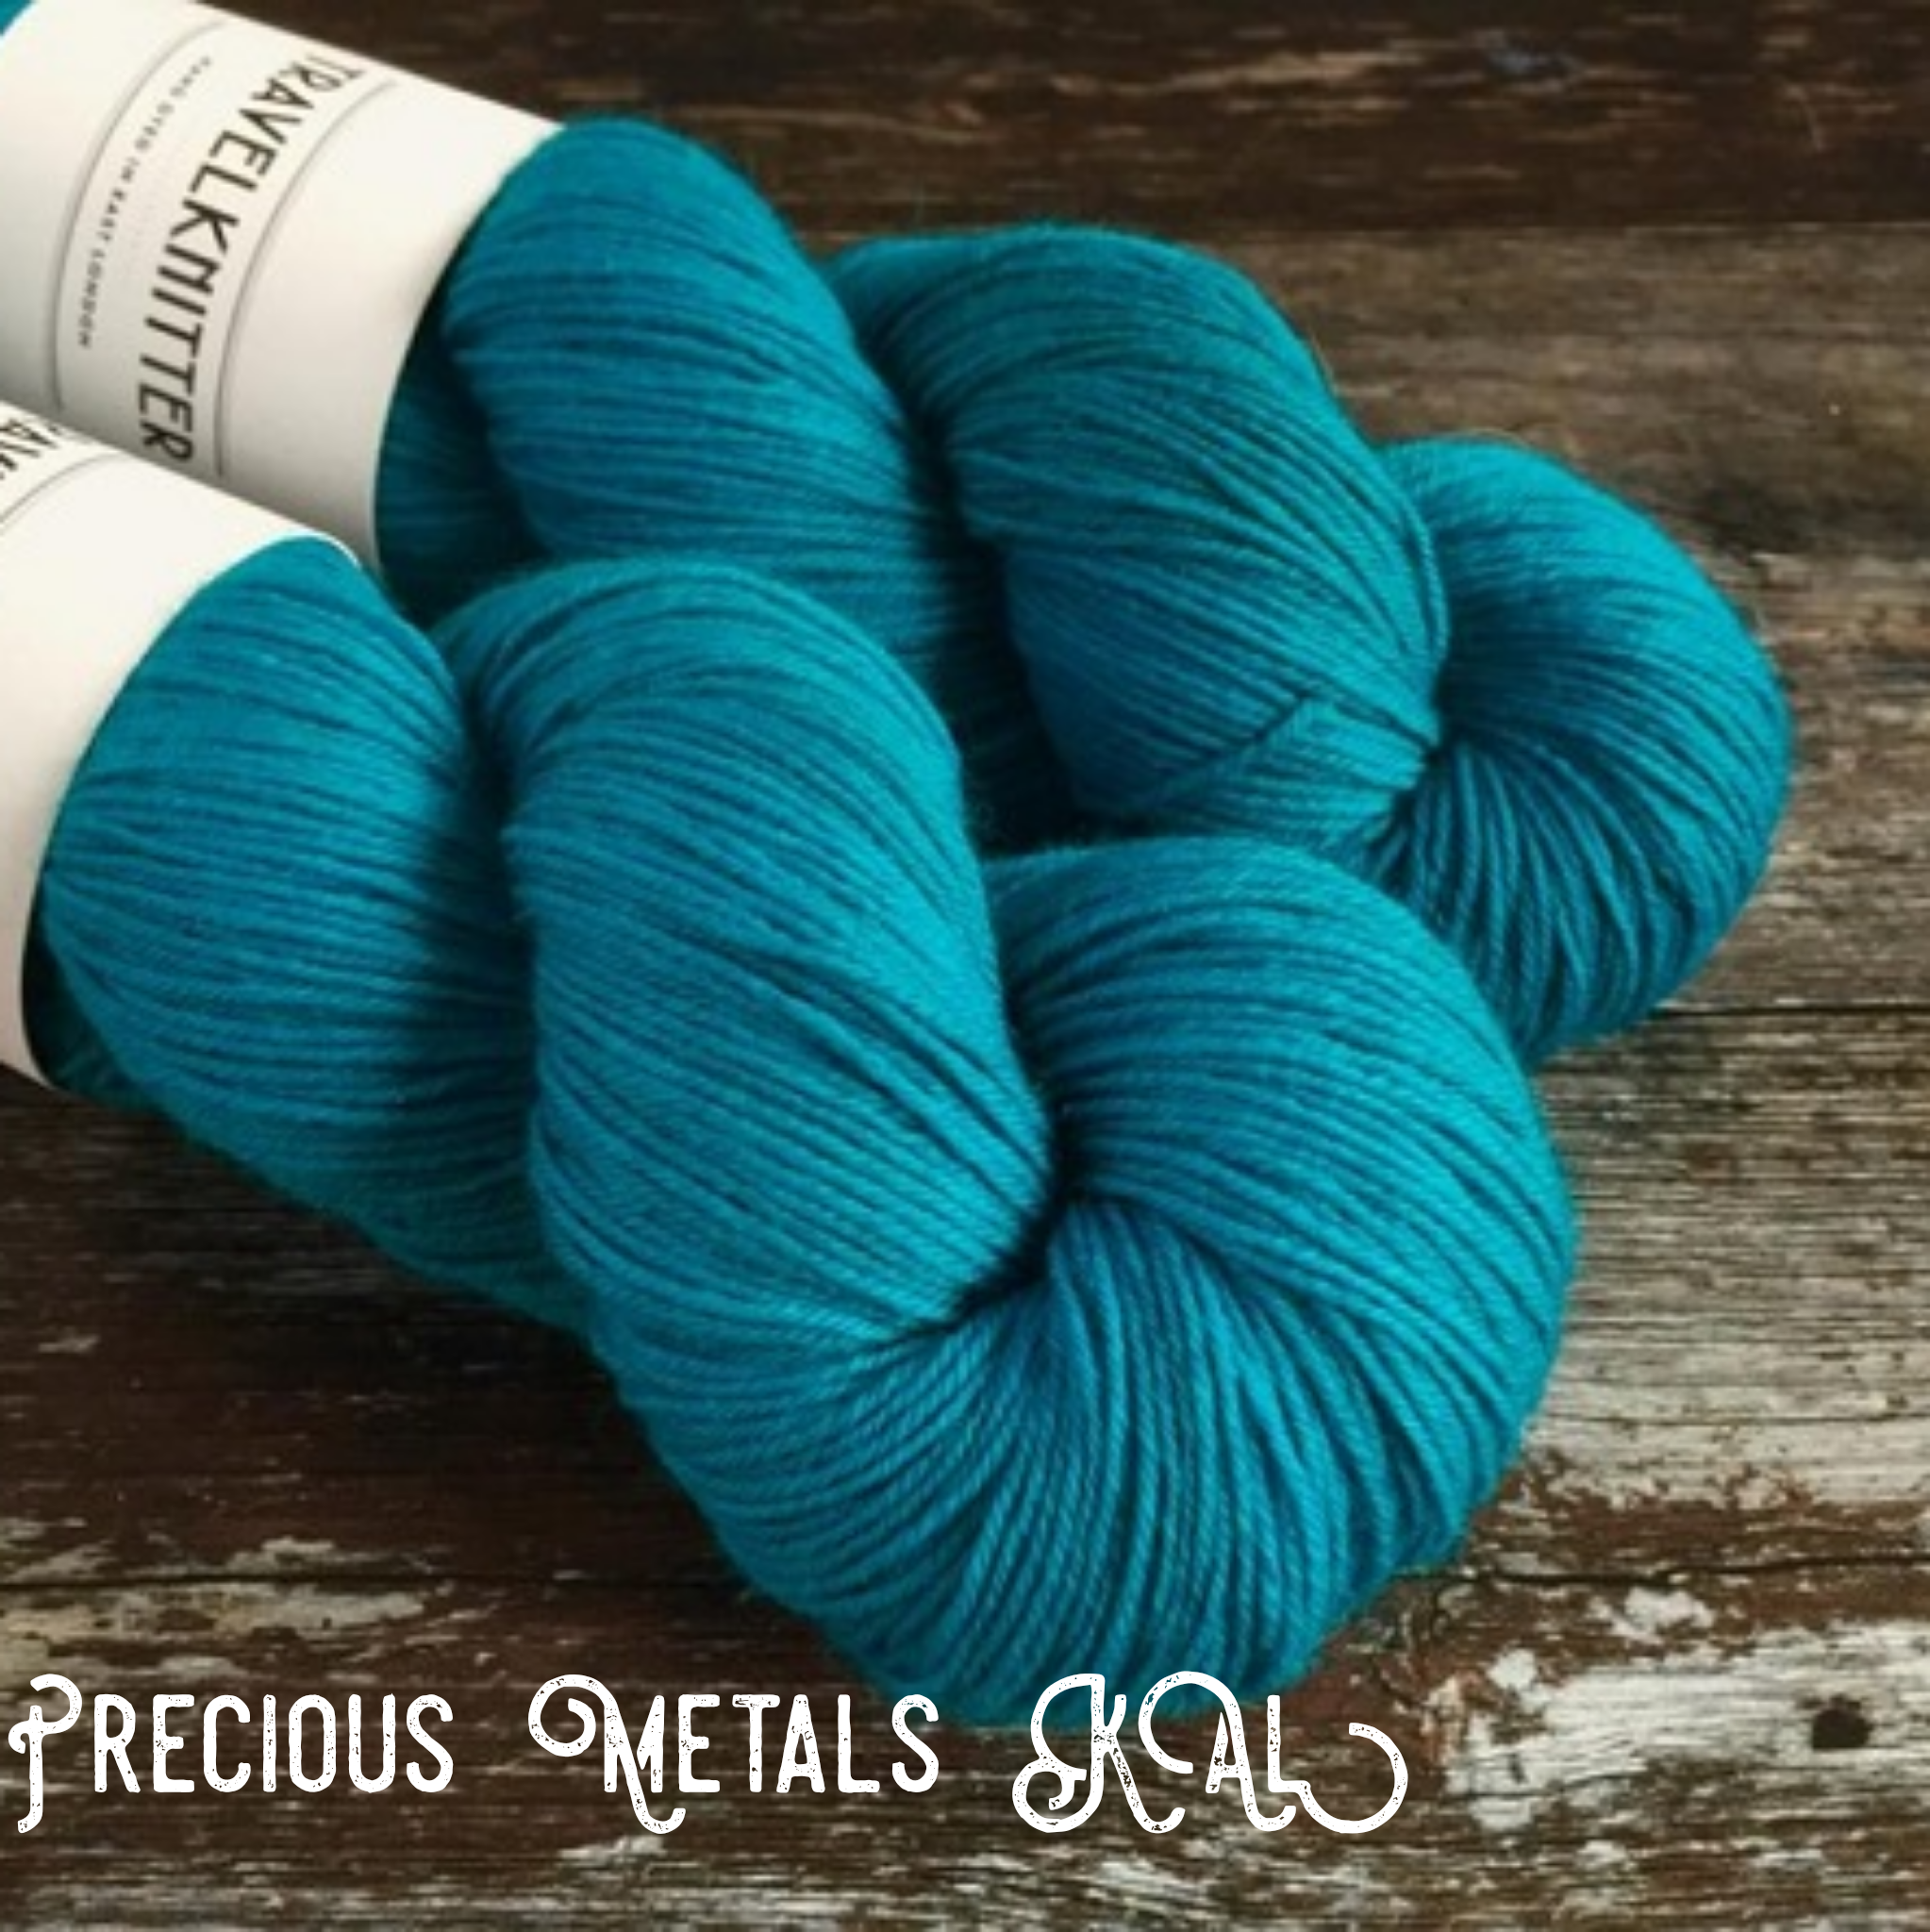 Precious Metals Socks KAL